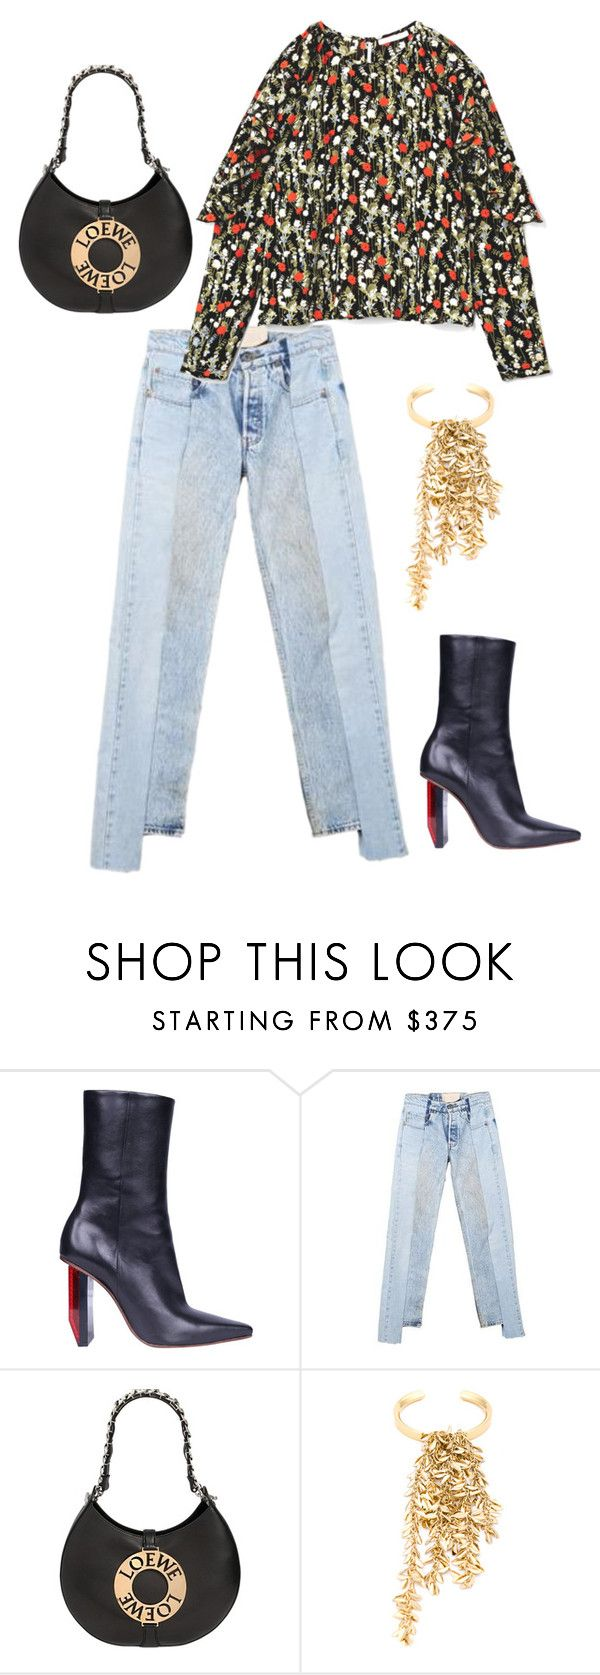 """""""Reflector"""" by deborarosa ❤ liked on Polyvore featuring Vetements and Loewe"""